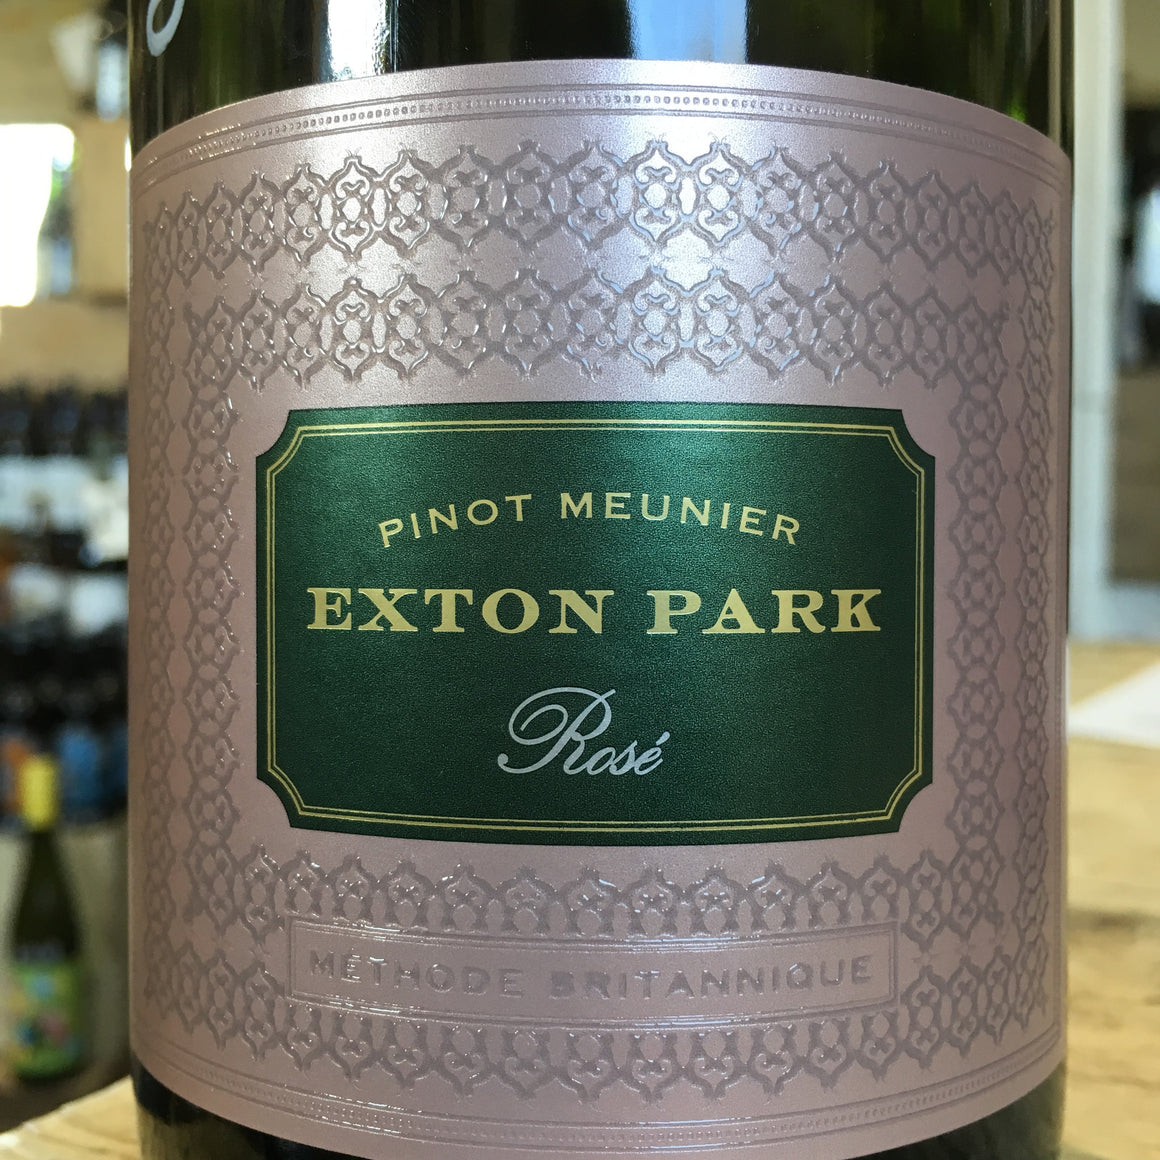 Exton Park Pinot Meunier Rose NV - Butlers Wine Cellar Brighton